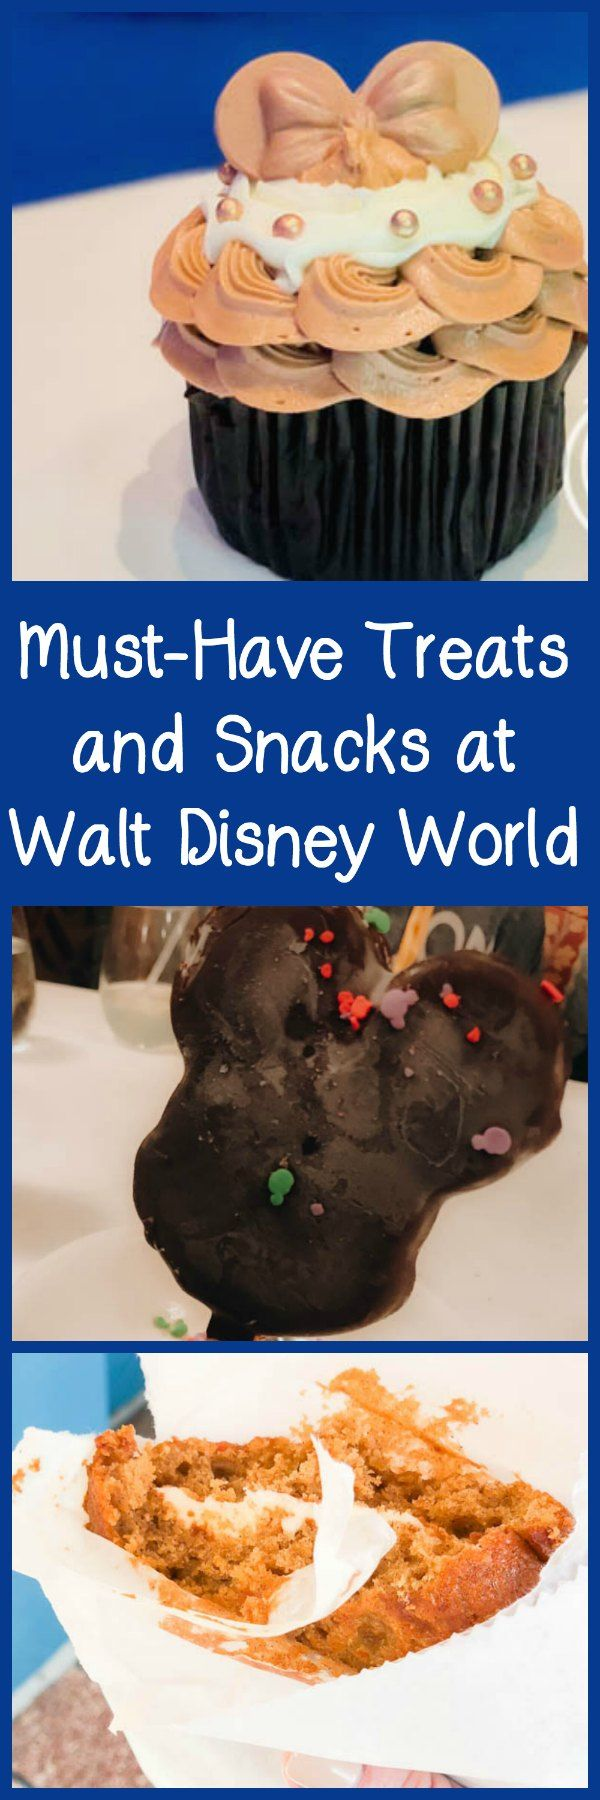 Must-Have Treats and Snacks at Walt Disney World, Including Dole Whips, Zebra Domes, Mickey Bars, and Beignets. #disney #ad #familytravel